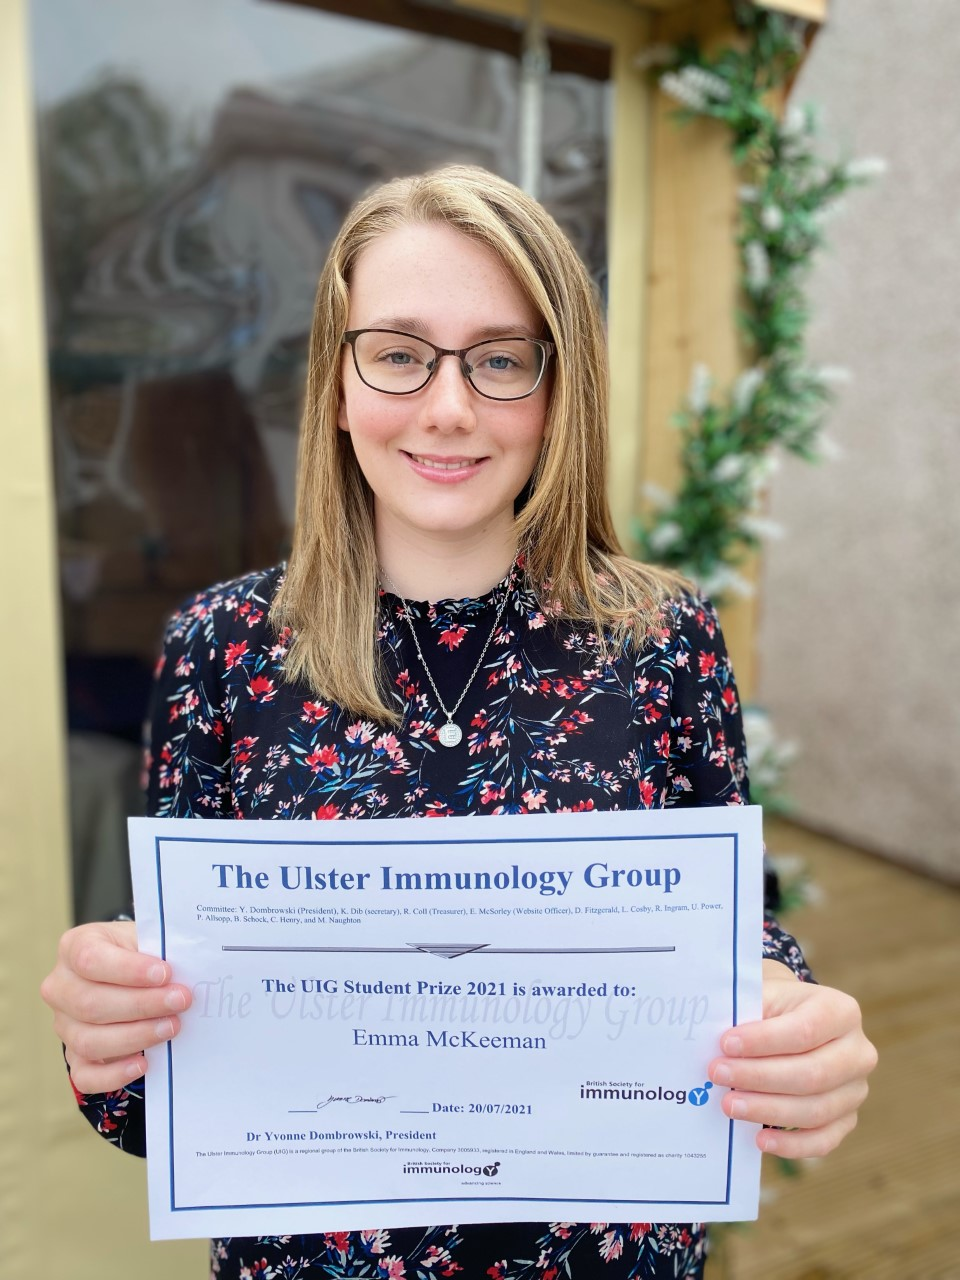 Woman with glasses holding a prize certificate